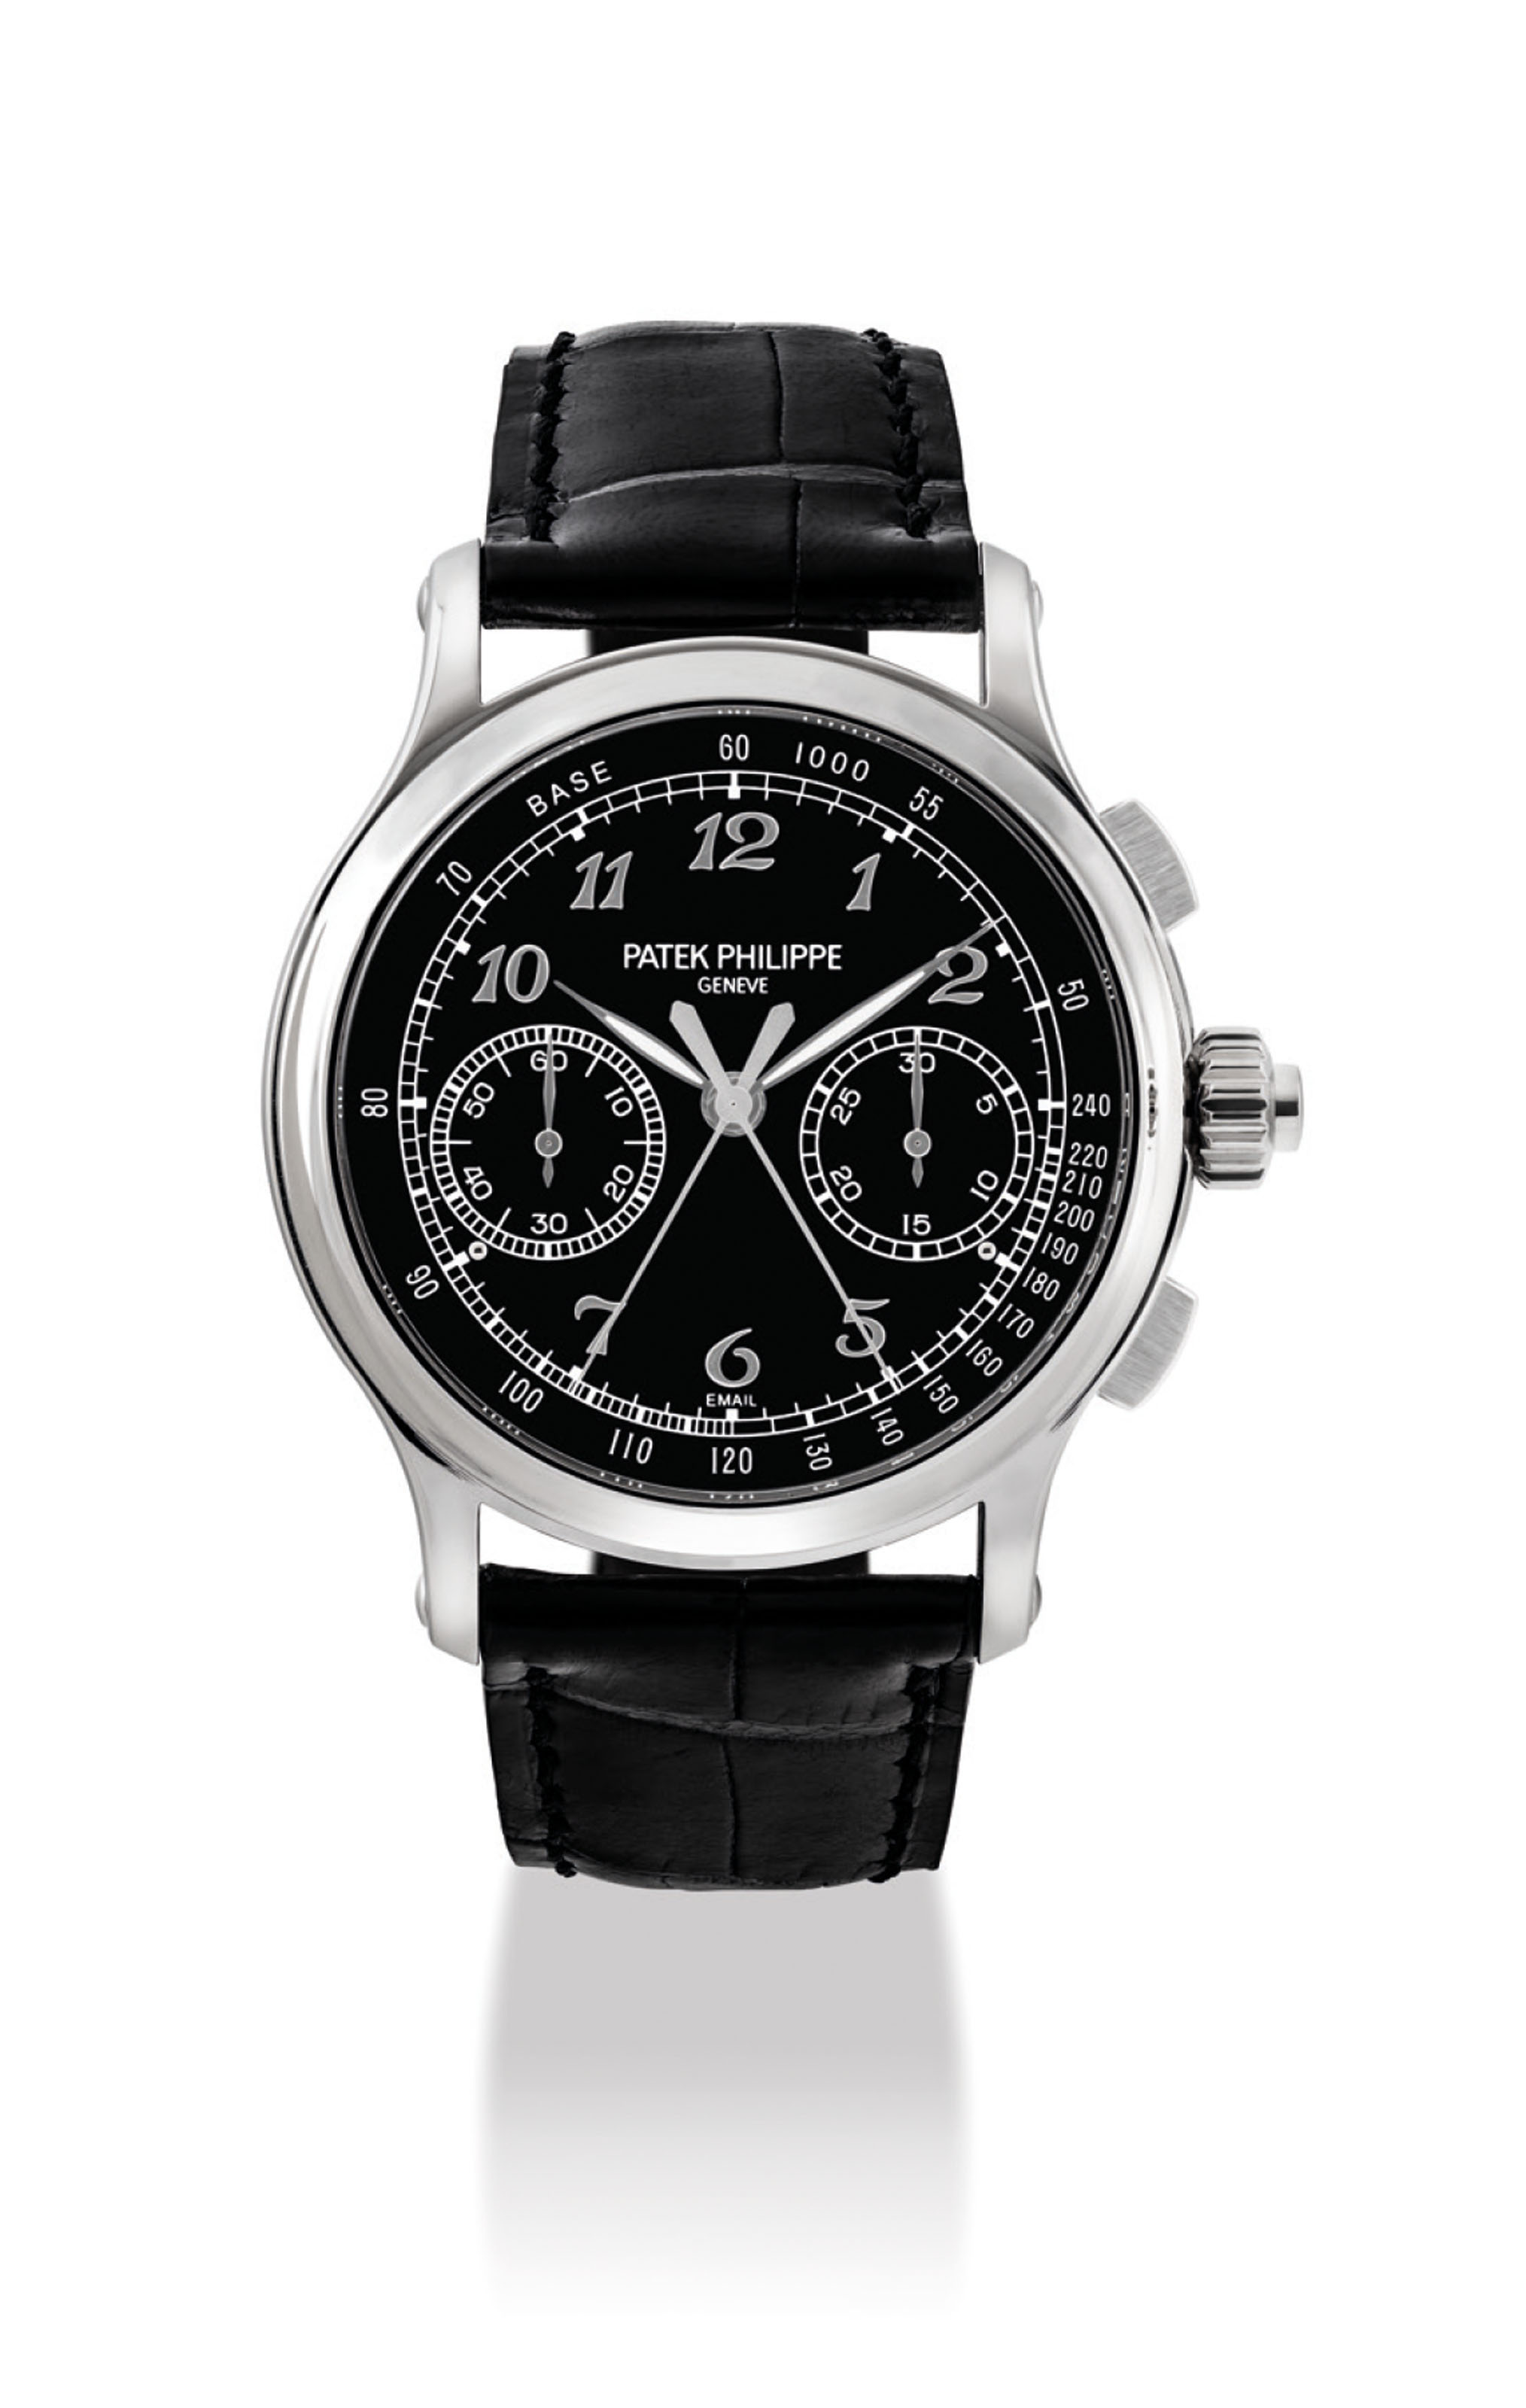 P Philippe Watch Five Reasons Collectors Love Patek Philippe Christie S